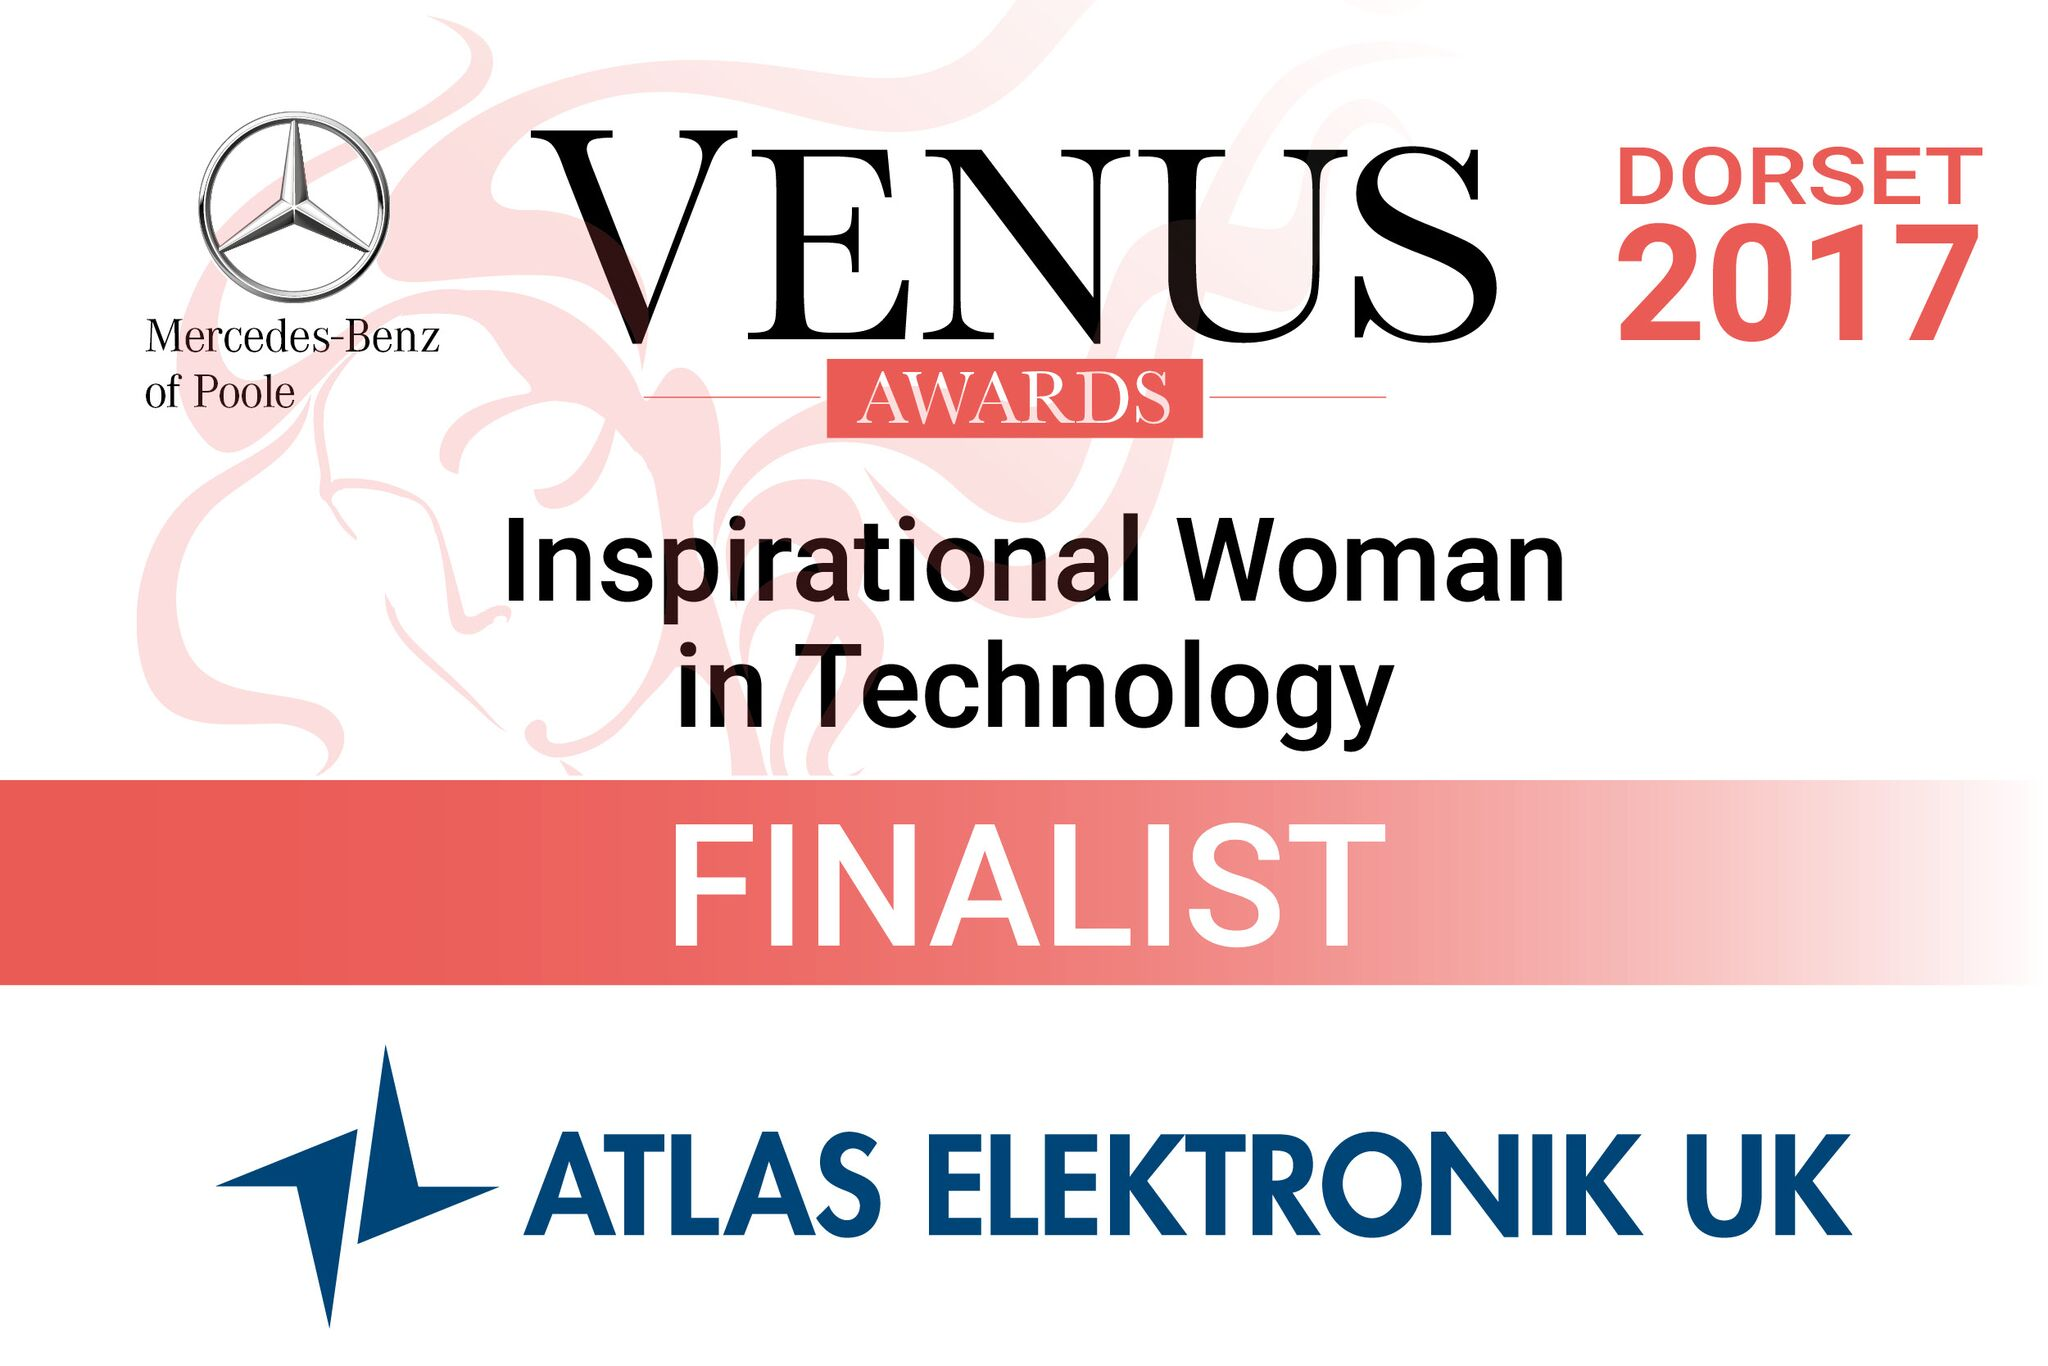 Venus Awards Finalist 2017